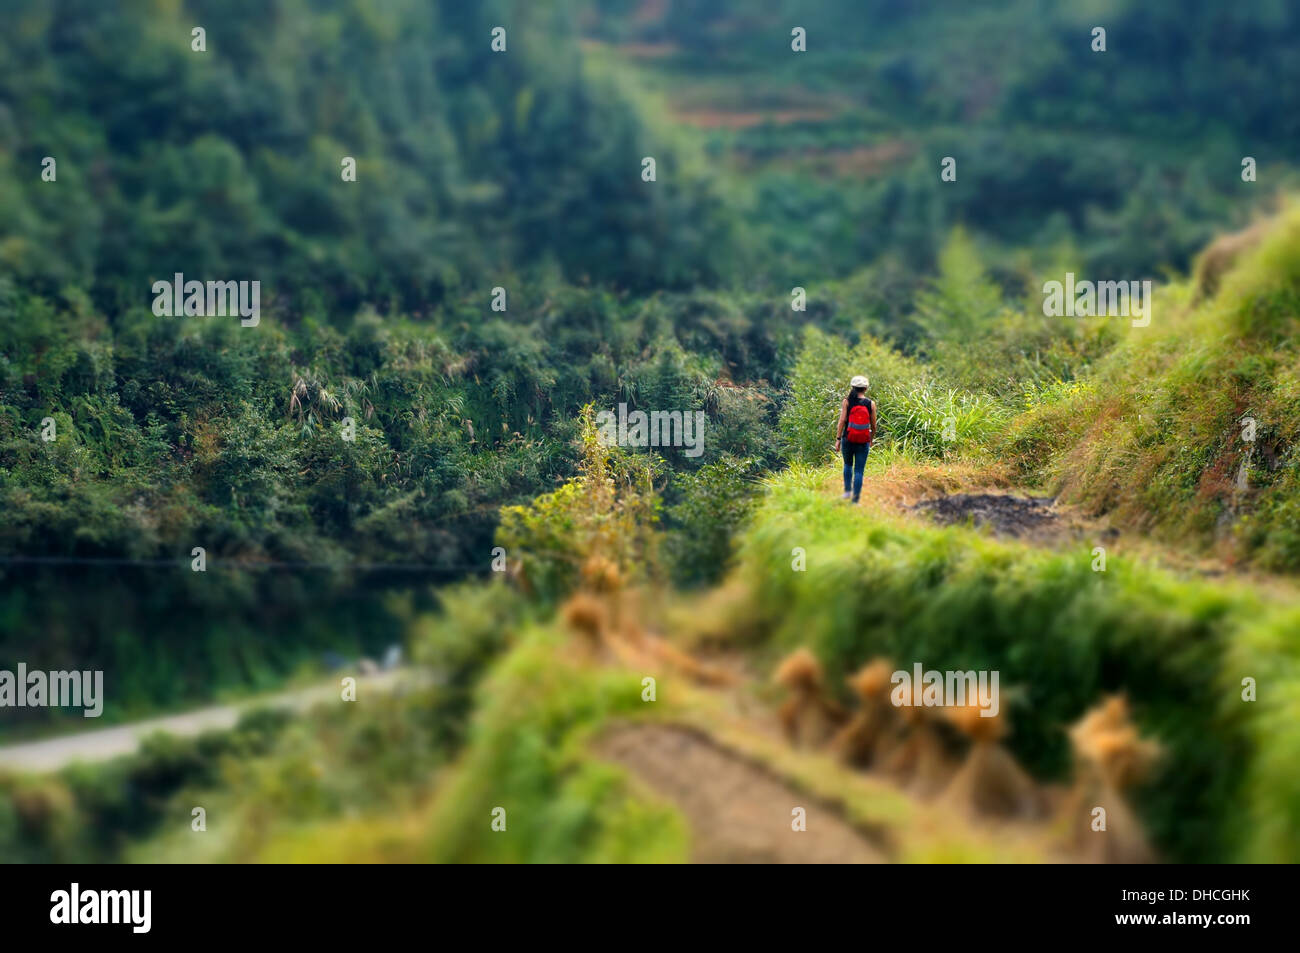 A lone female traveller in Wuyuan, Jiangxi, China - Stock Image